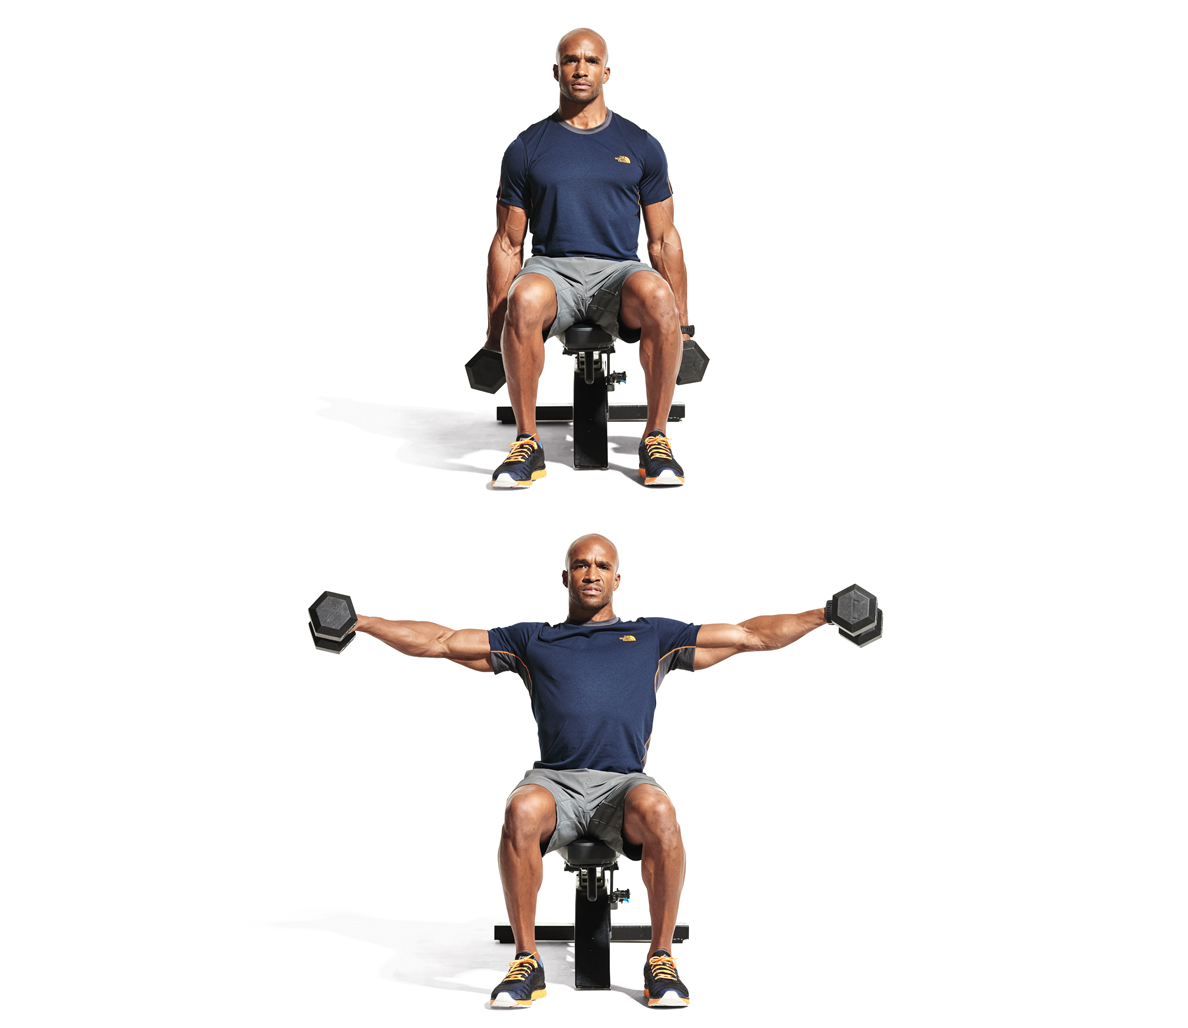 seated dumbbell lateral raise main - Latihan Ampuh Bentuk Otot dalam 4 Minggu !